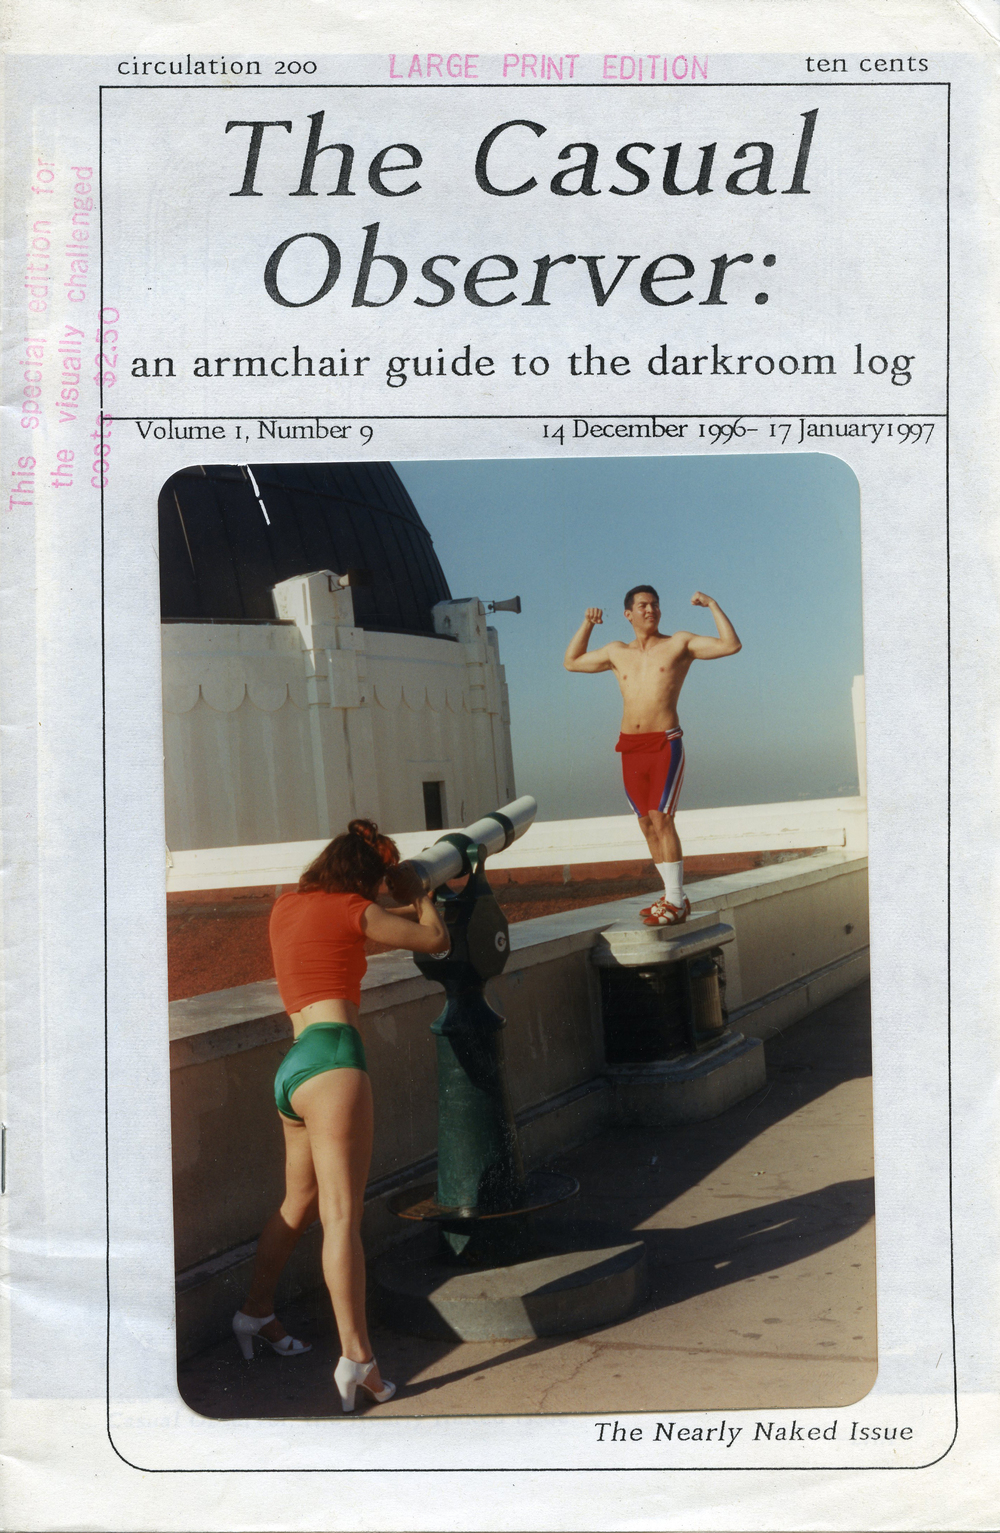 The Casual Observer, 1996-1997